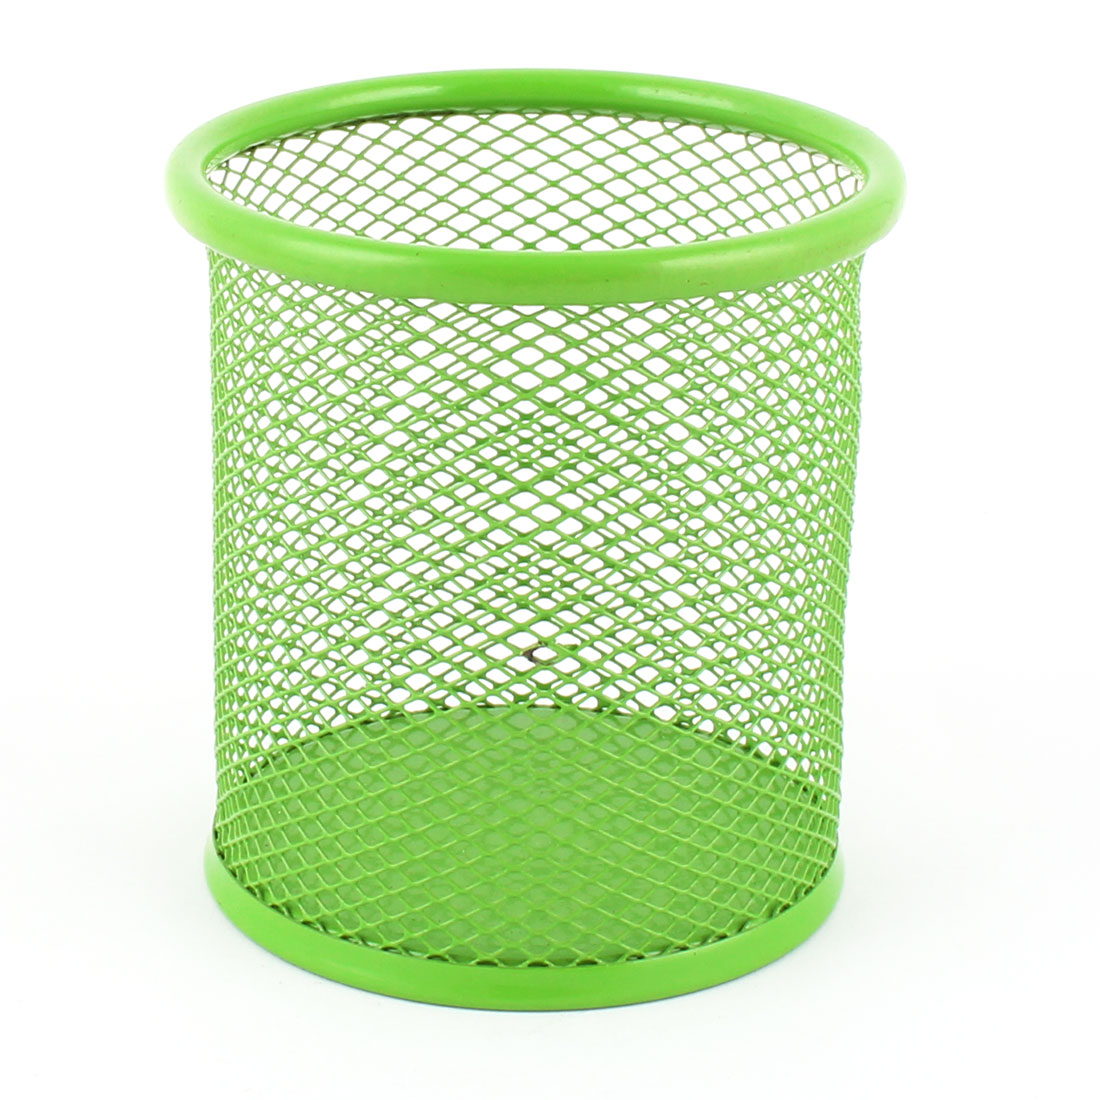 School Office Metal Cylinder Desk Pen Organizer Mesh Holder Green 9.5cm High